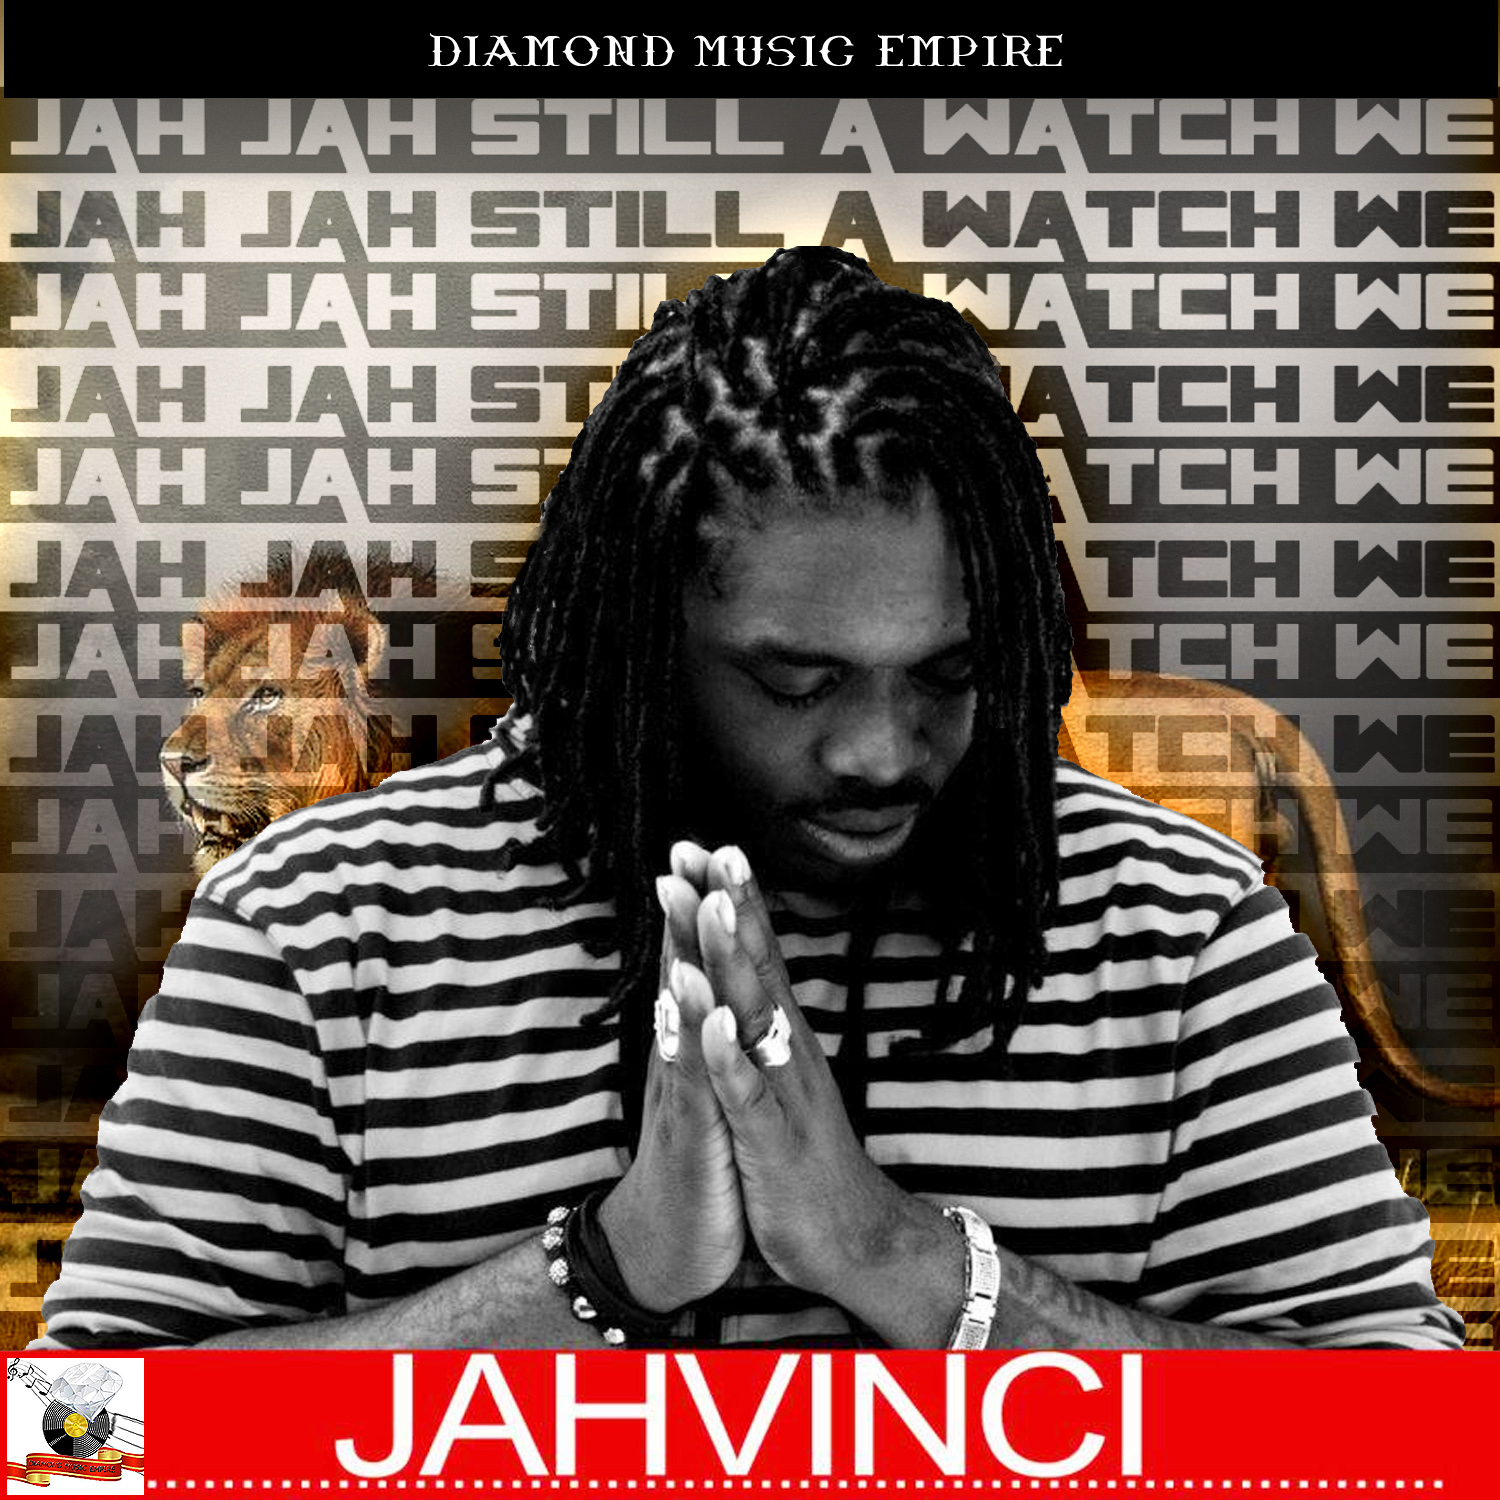 JAH VINCI – JAH JAH STILL A WATCH WE – DIAMOND MUSIC EMPIRE